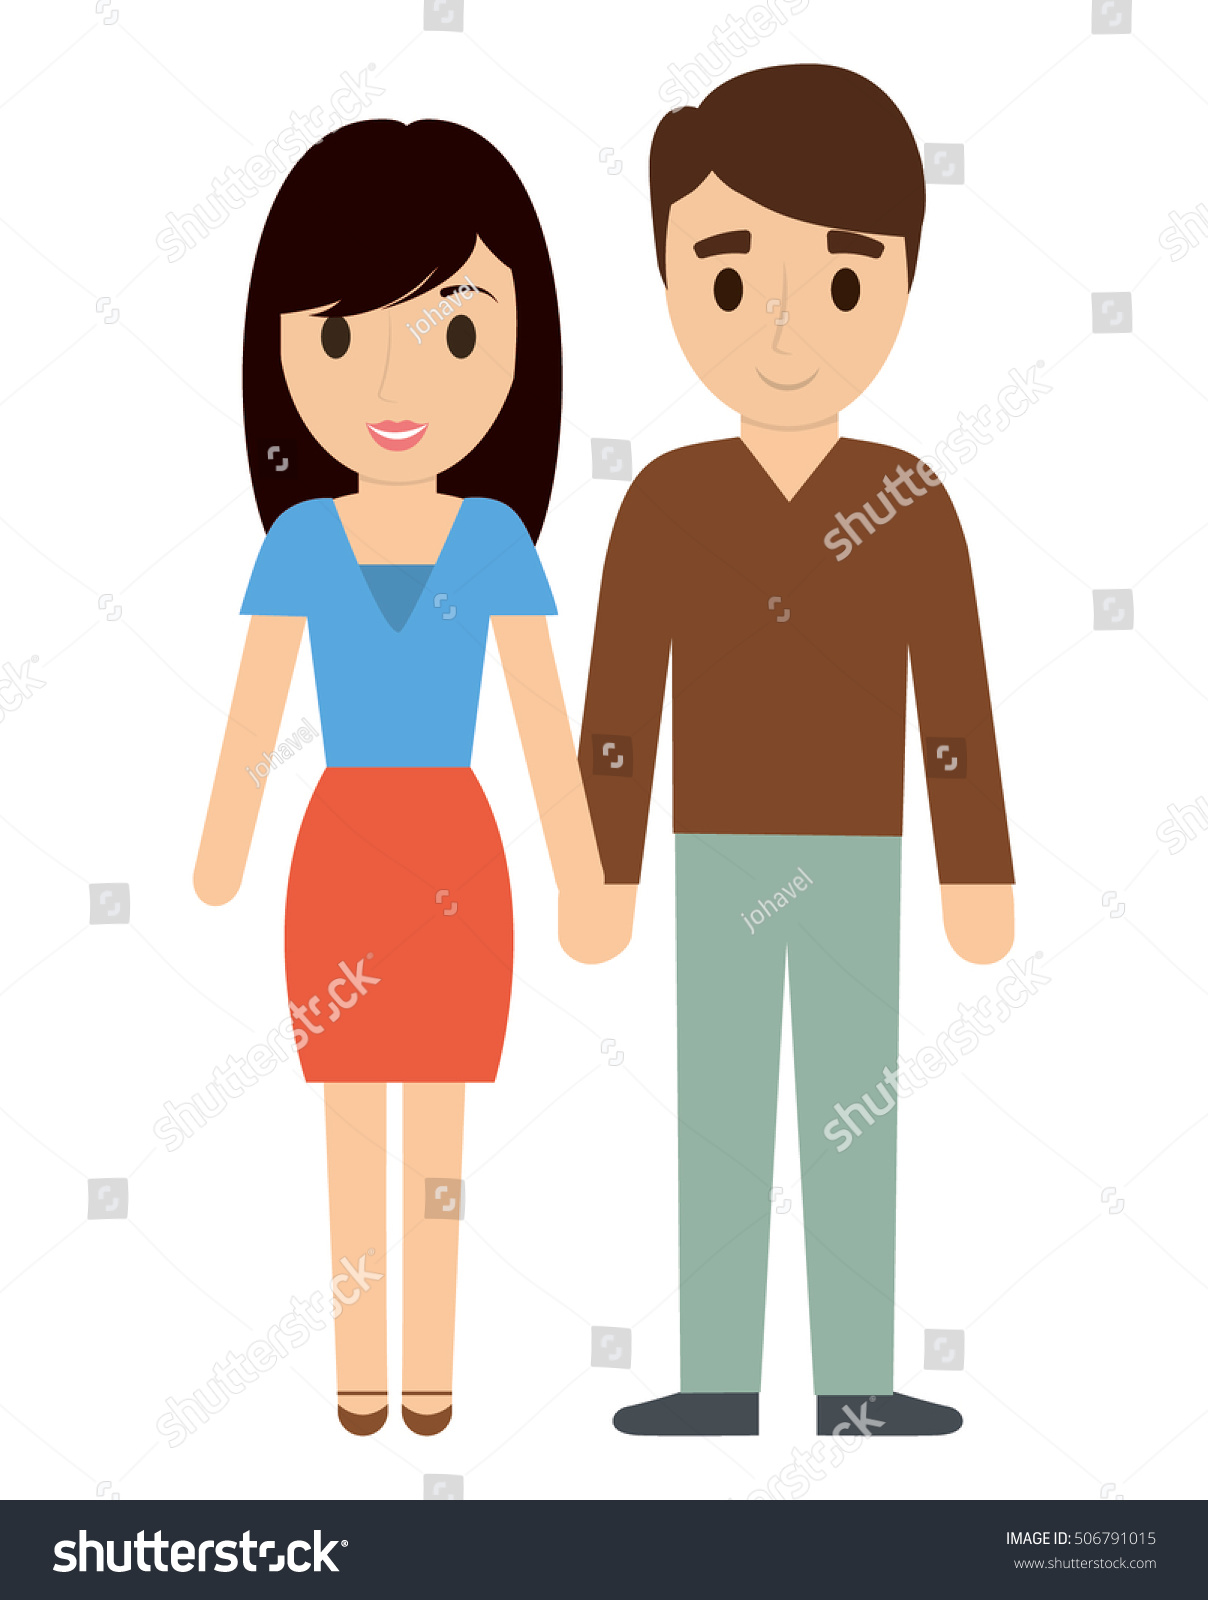 Mother And Father Cartoon : mother, father, cartoon, Couple, Father, Mother, Cartoon, Family, Stock, Vector, (Royalty, Free), 506791015